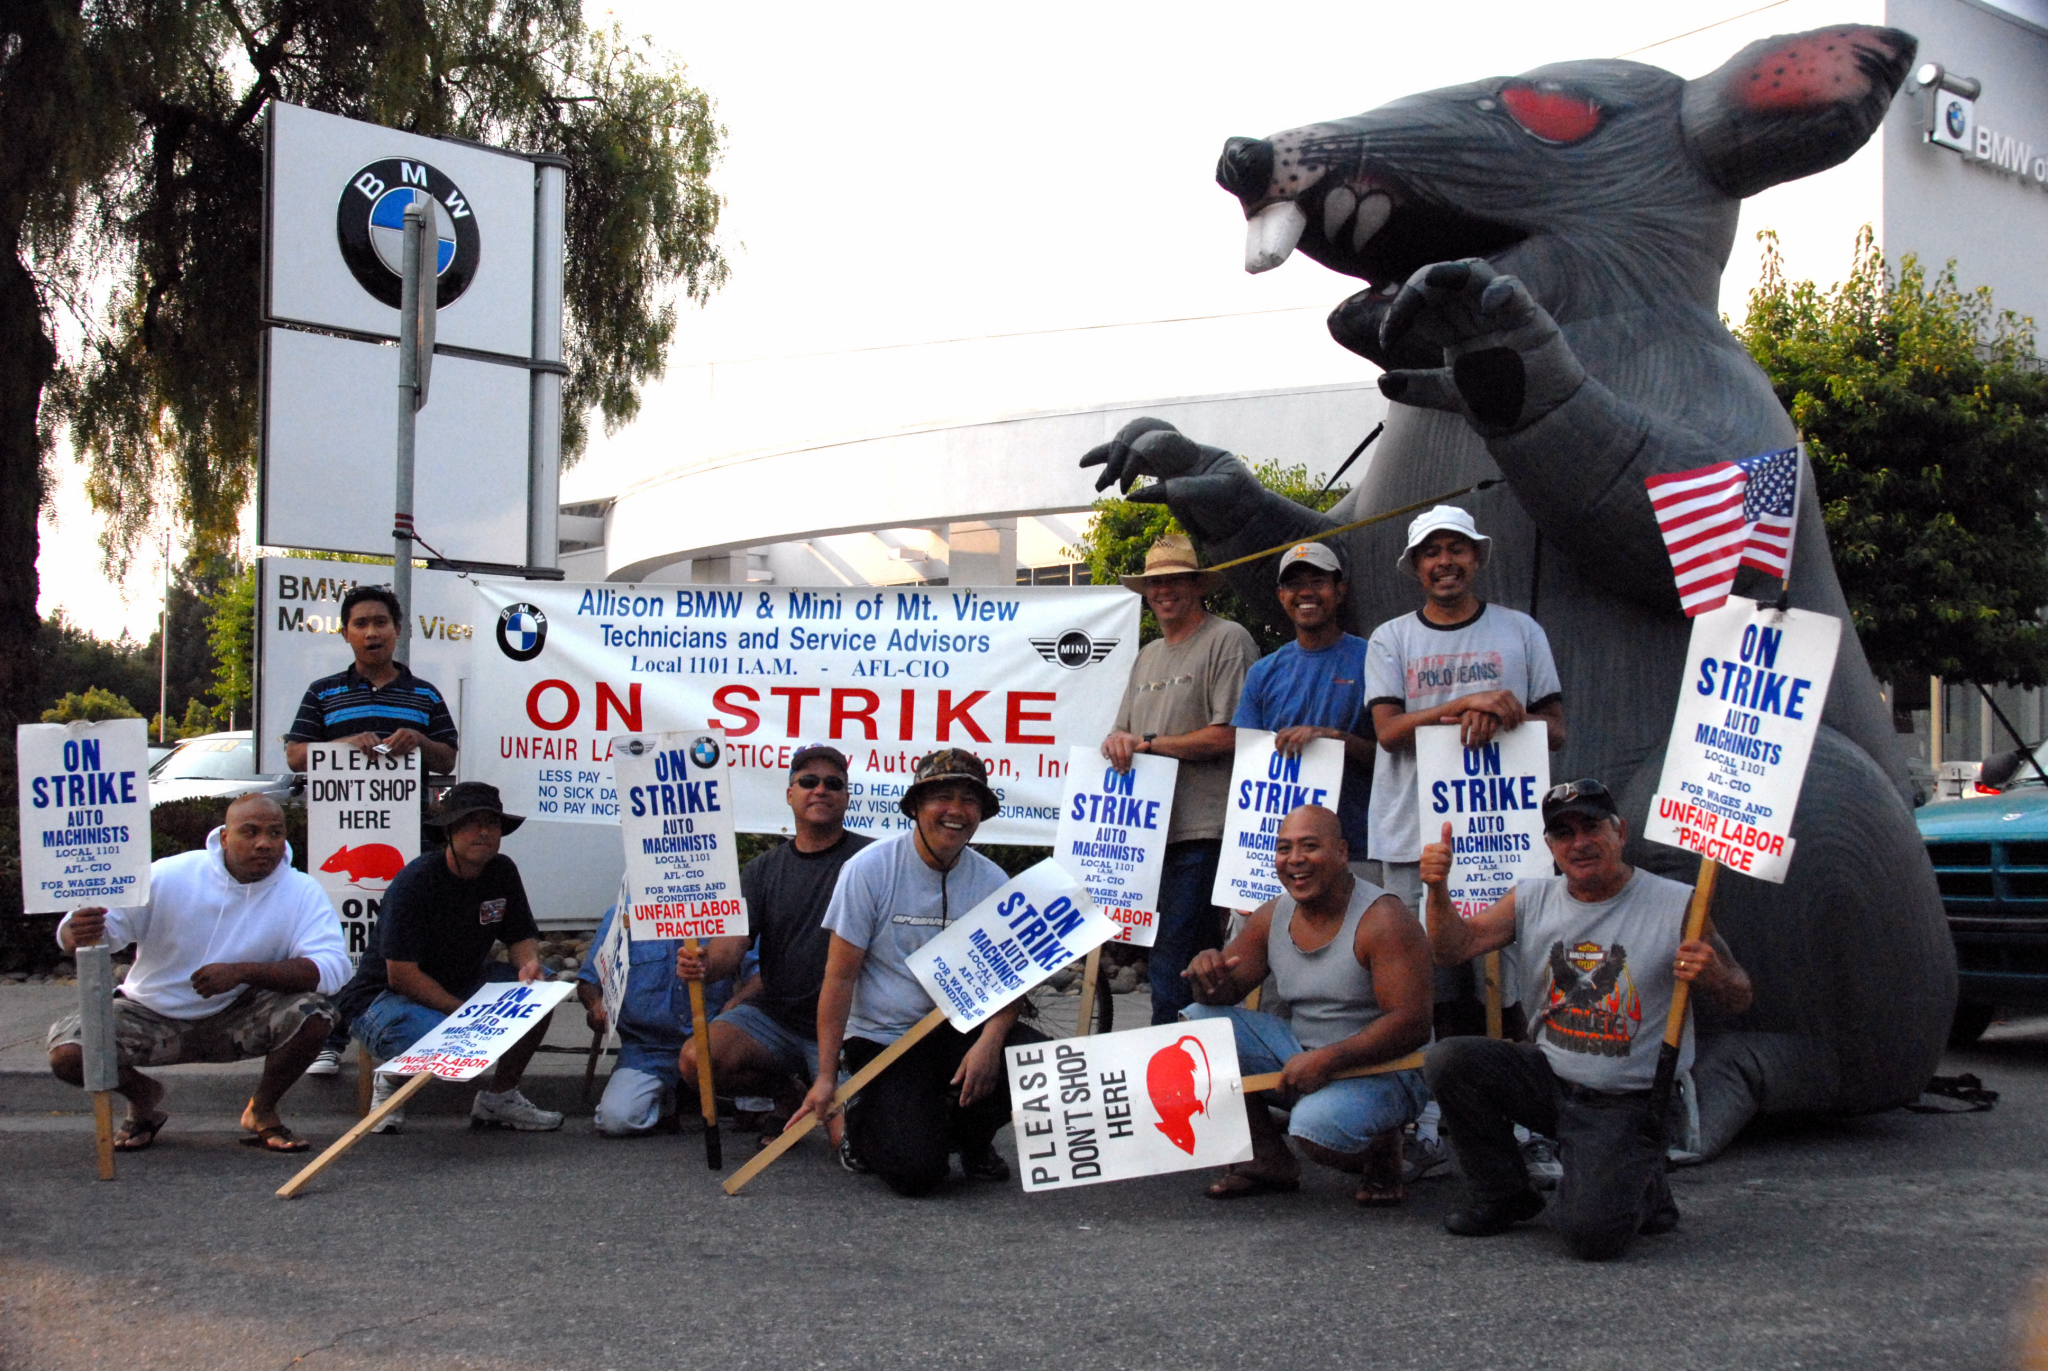 Bmw Mountain View >> Strike At Allison Bmw In Mountain View Indybay